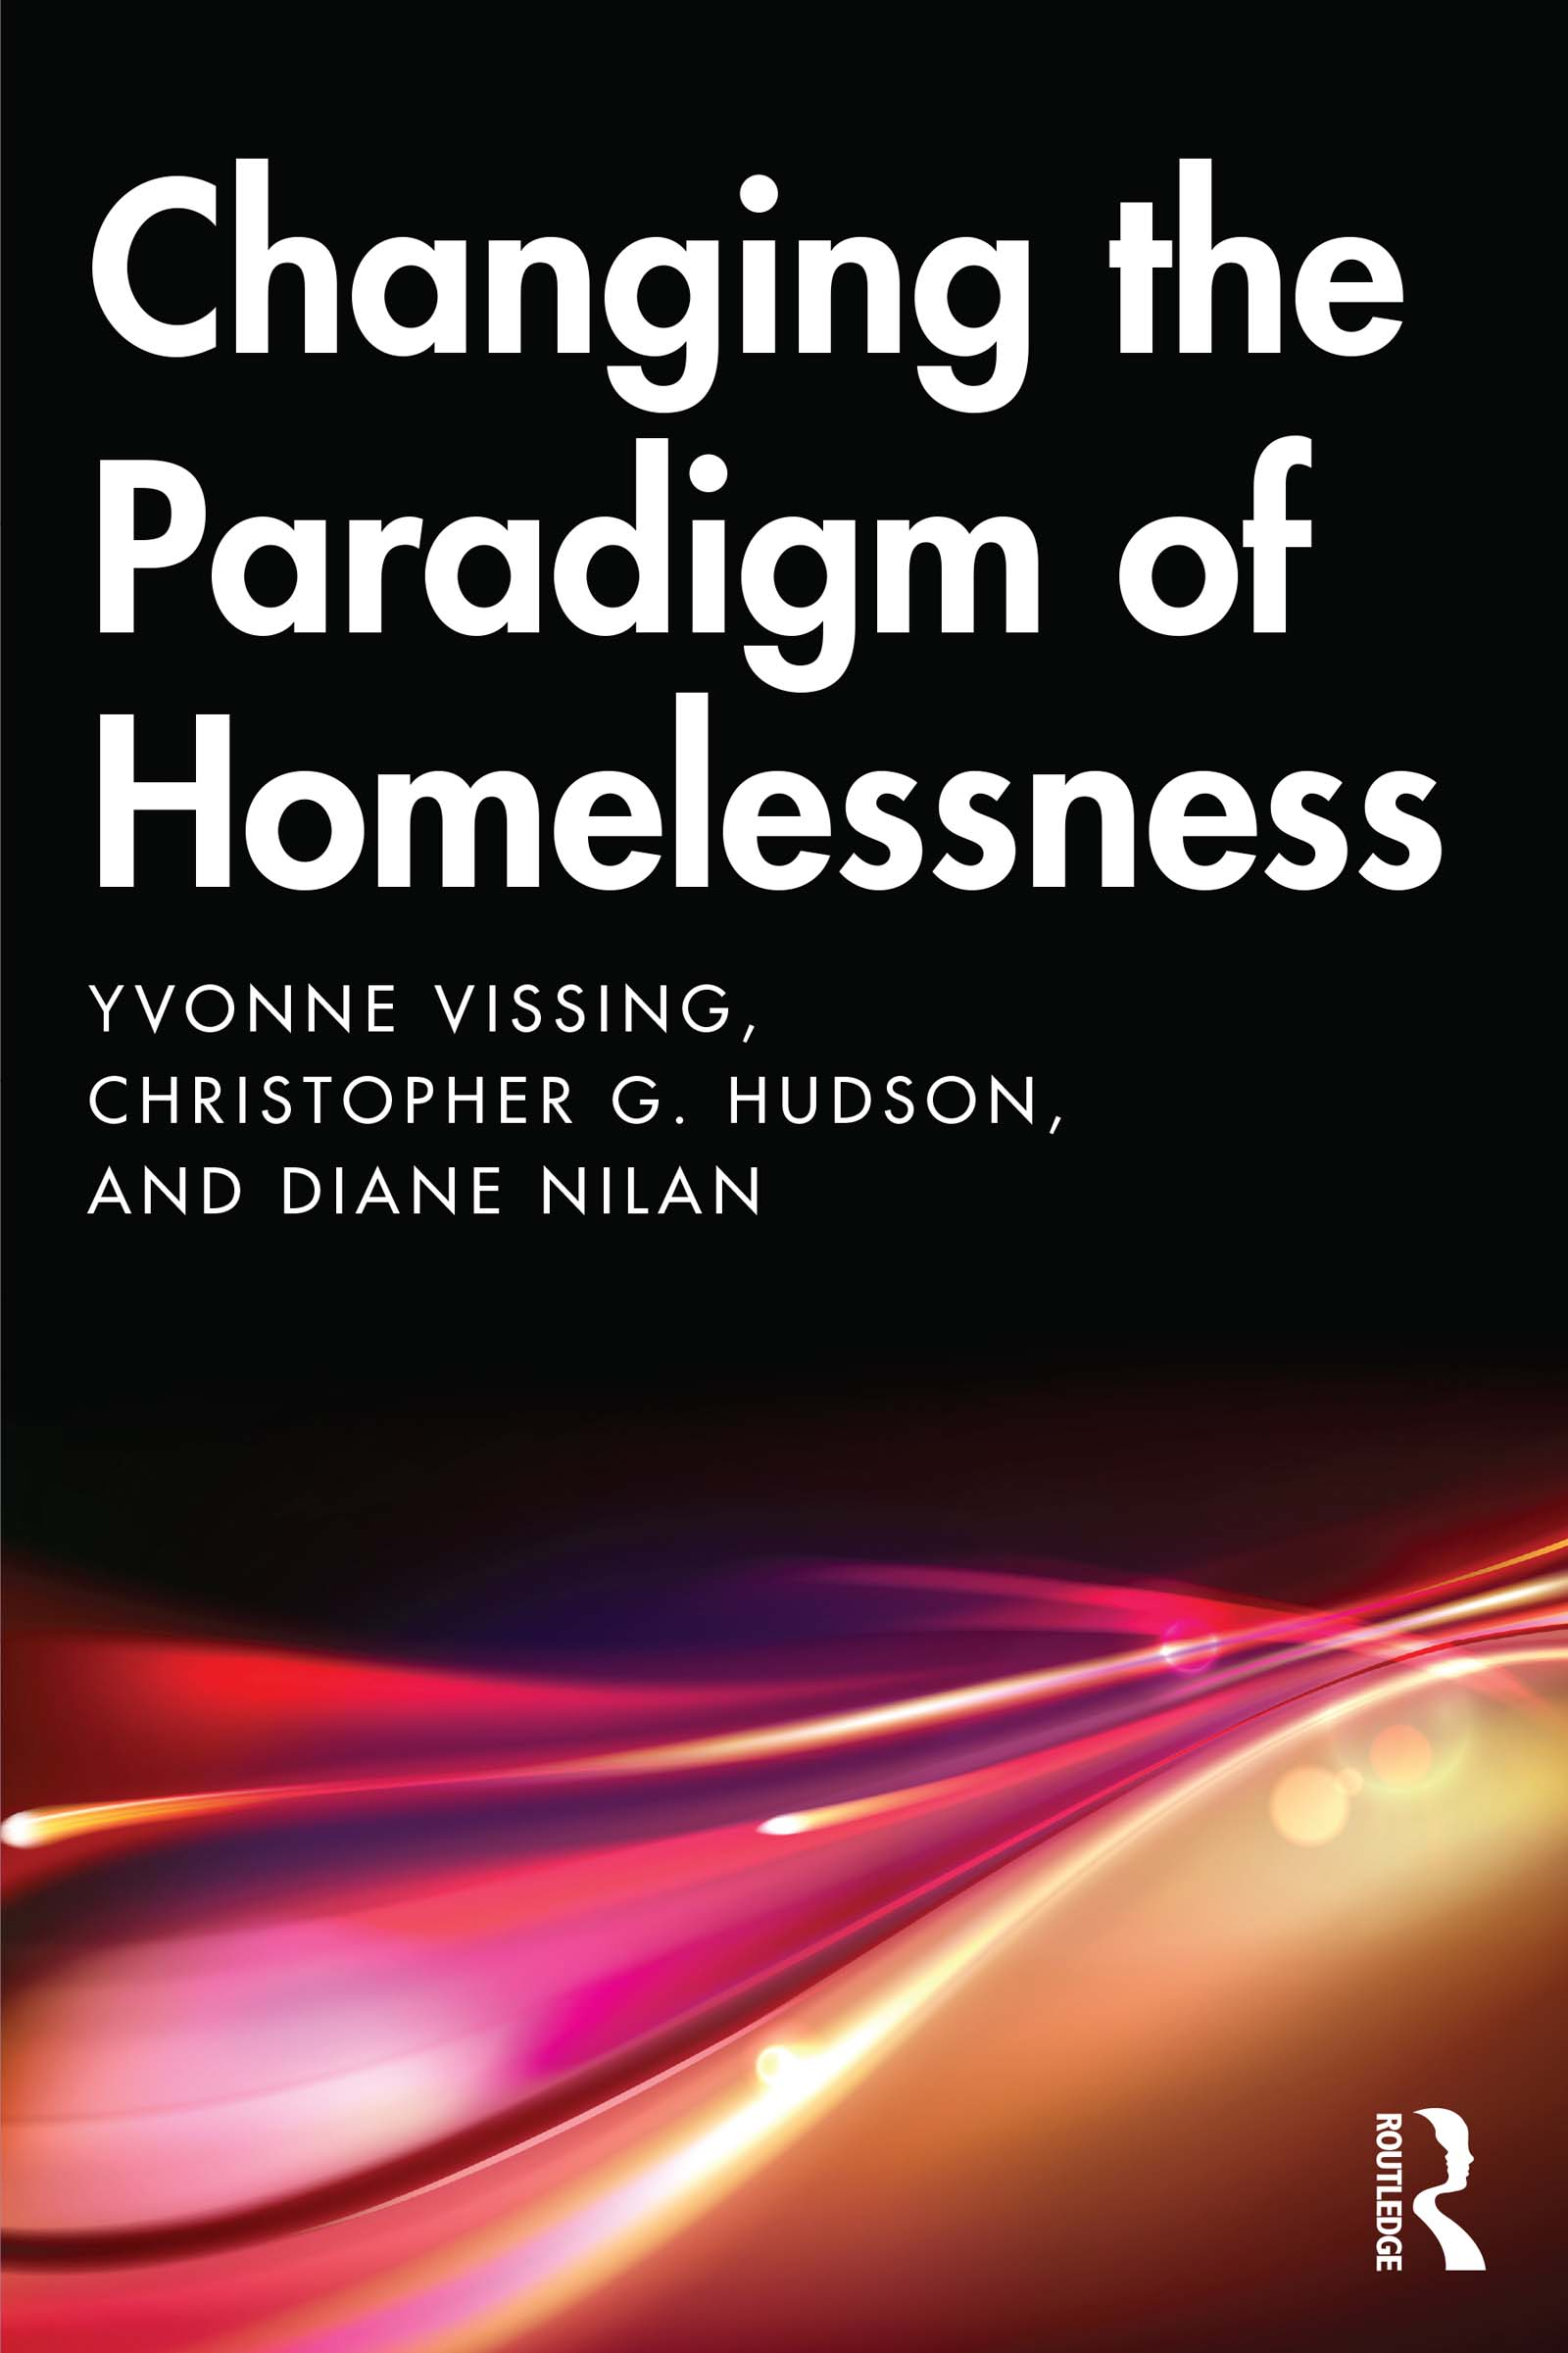 Changing the Paradigm of Homelessness book cover